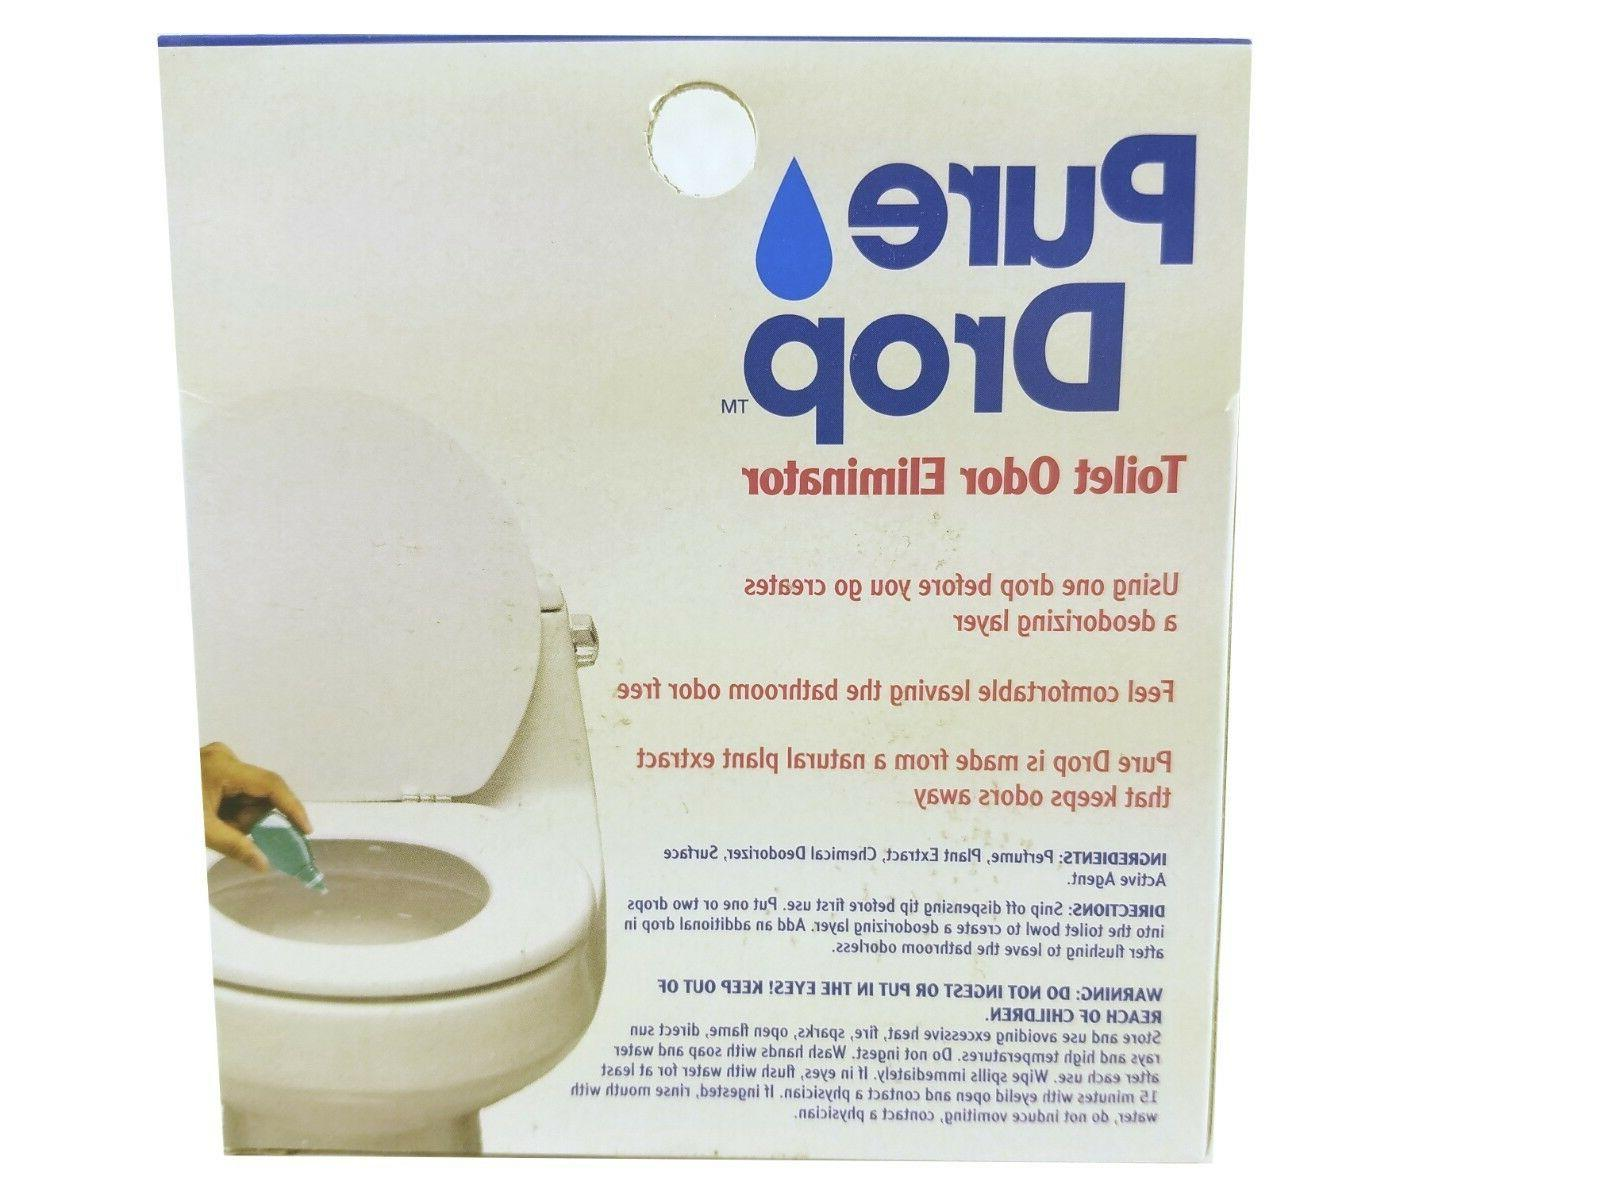 Pure Toilet Odor Eliminator Eco Friendly Deodorizer of 2